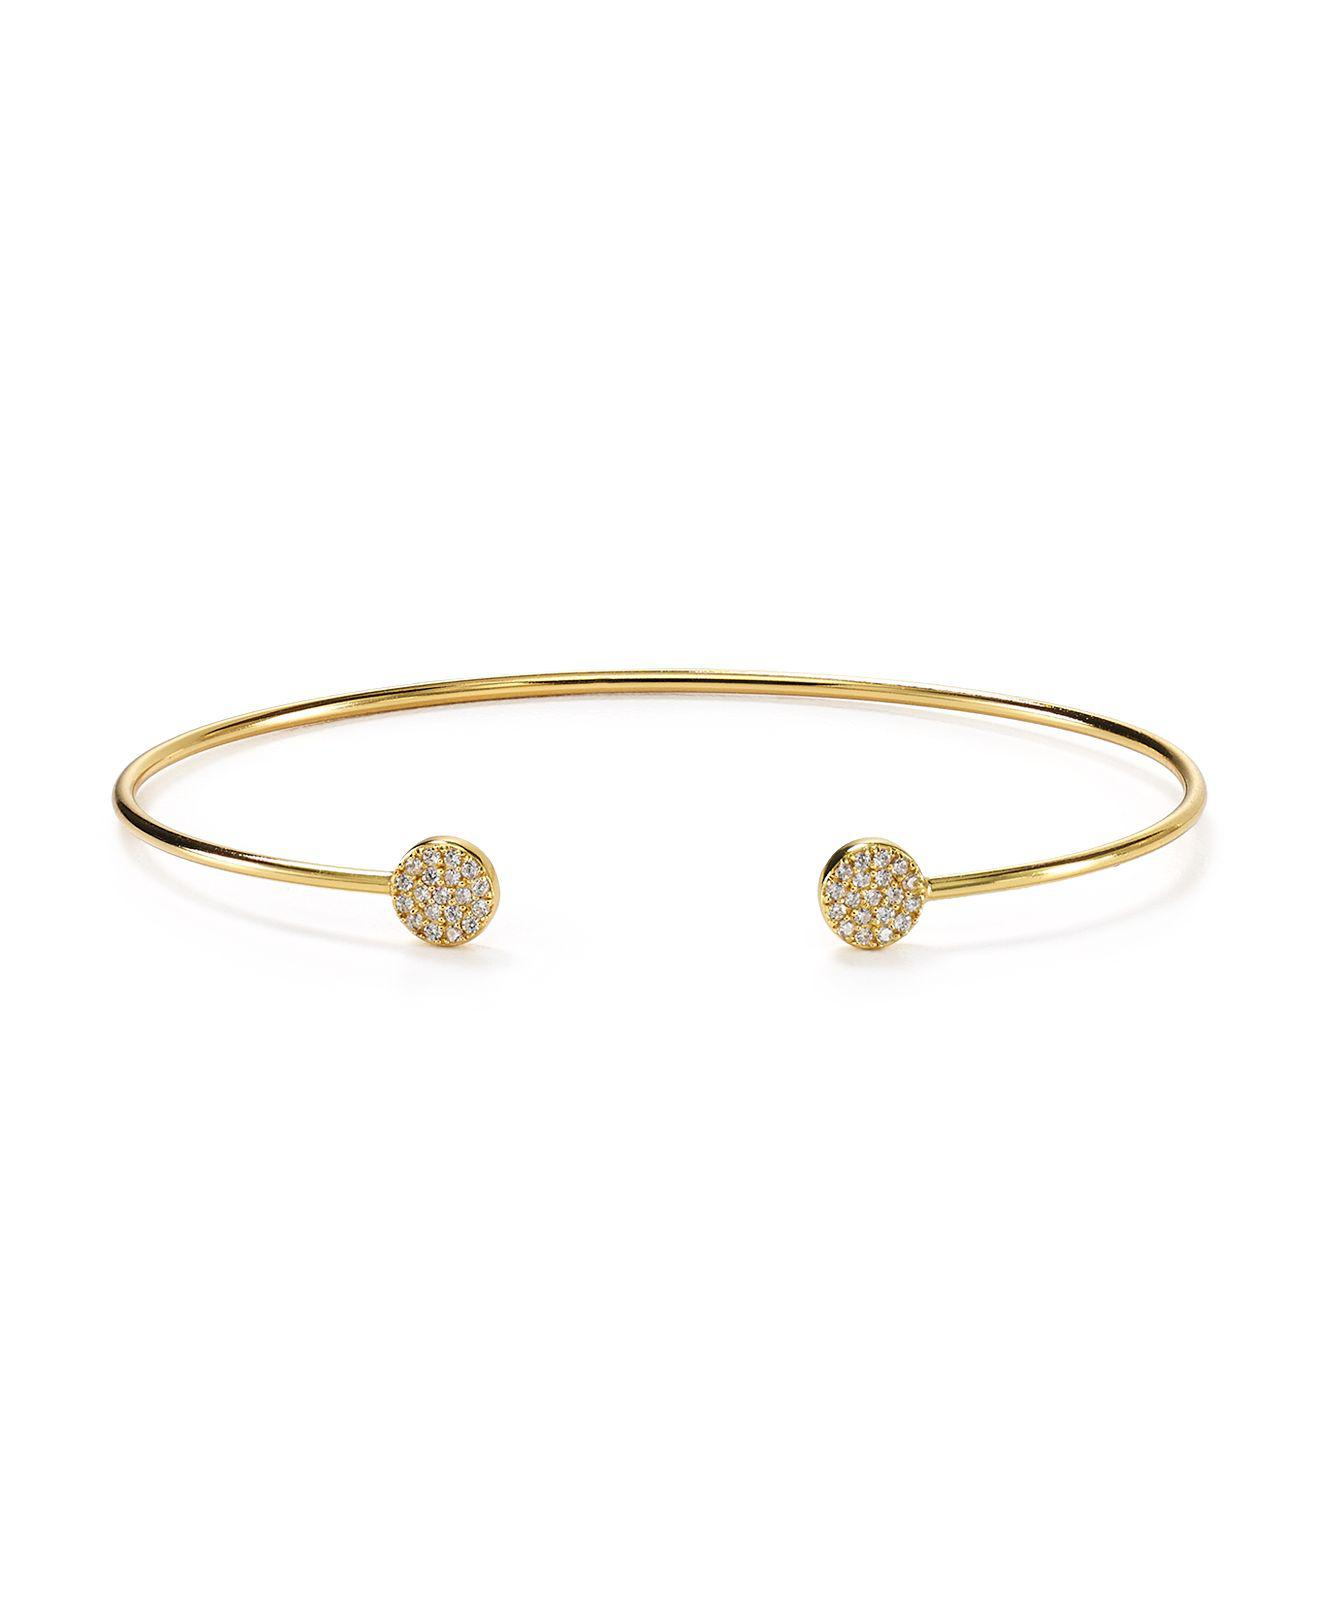 BCBGeneration Pave Cuff Bangle Bracelet N22oX